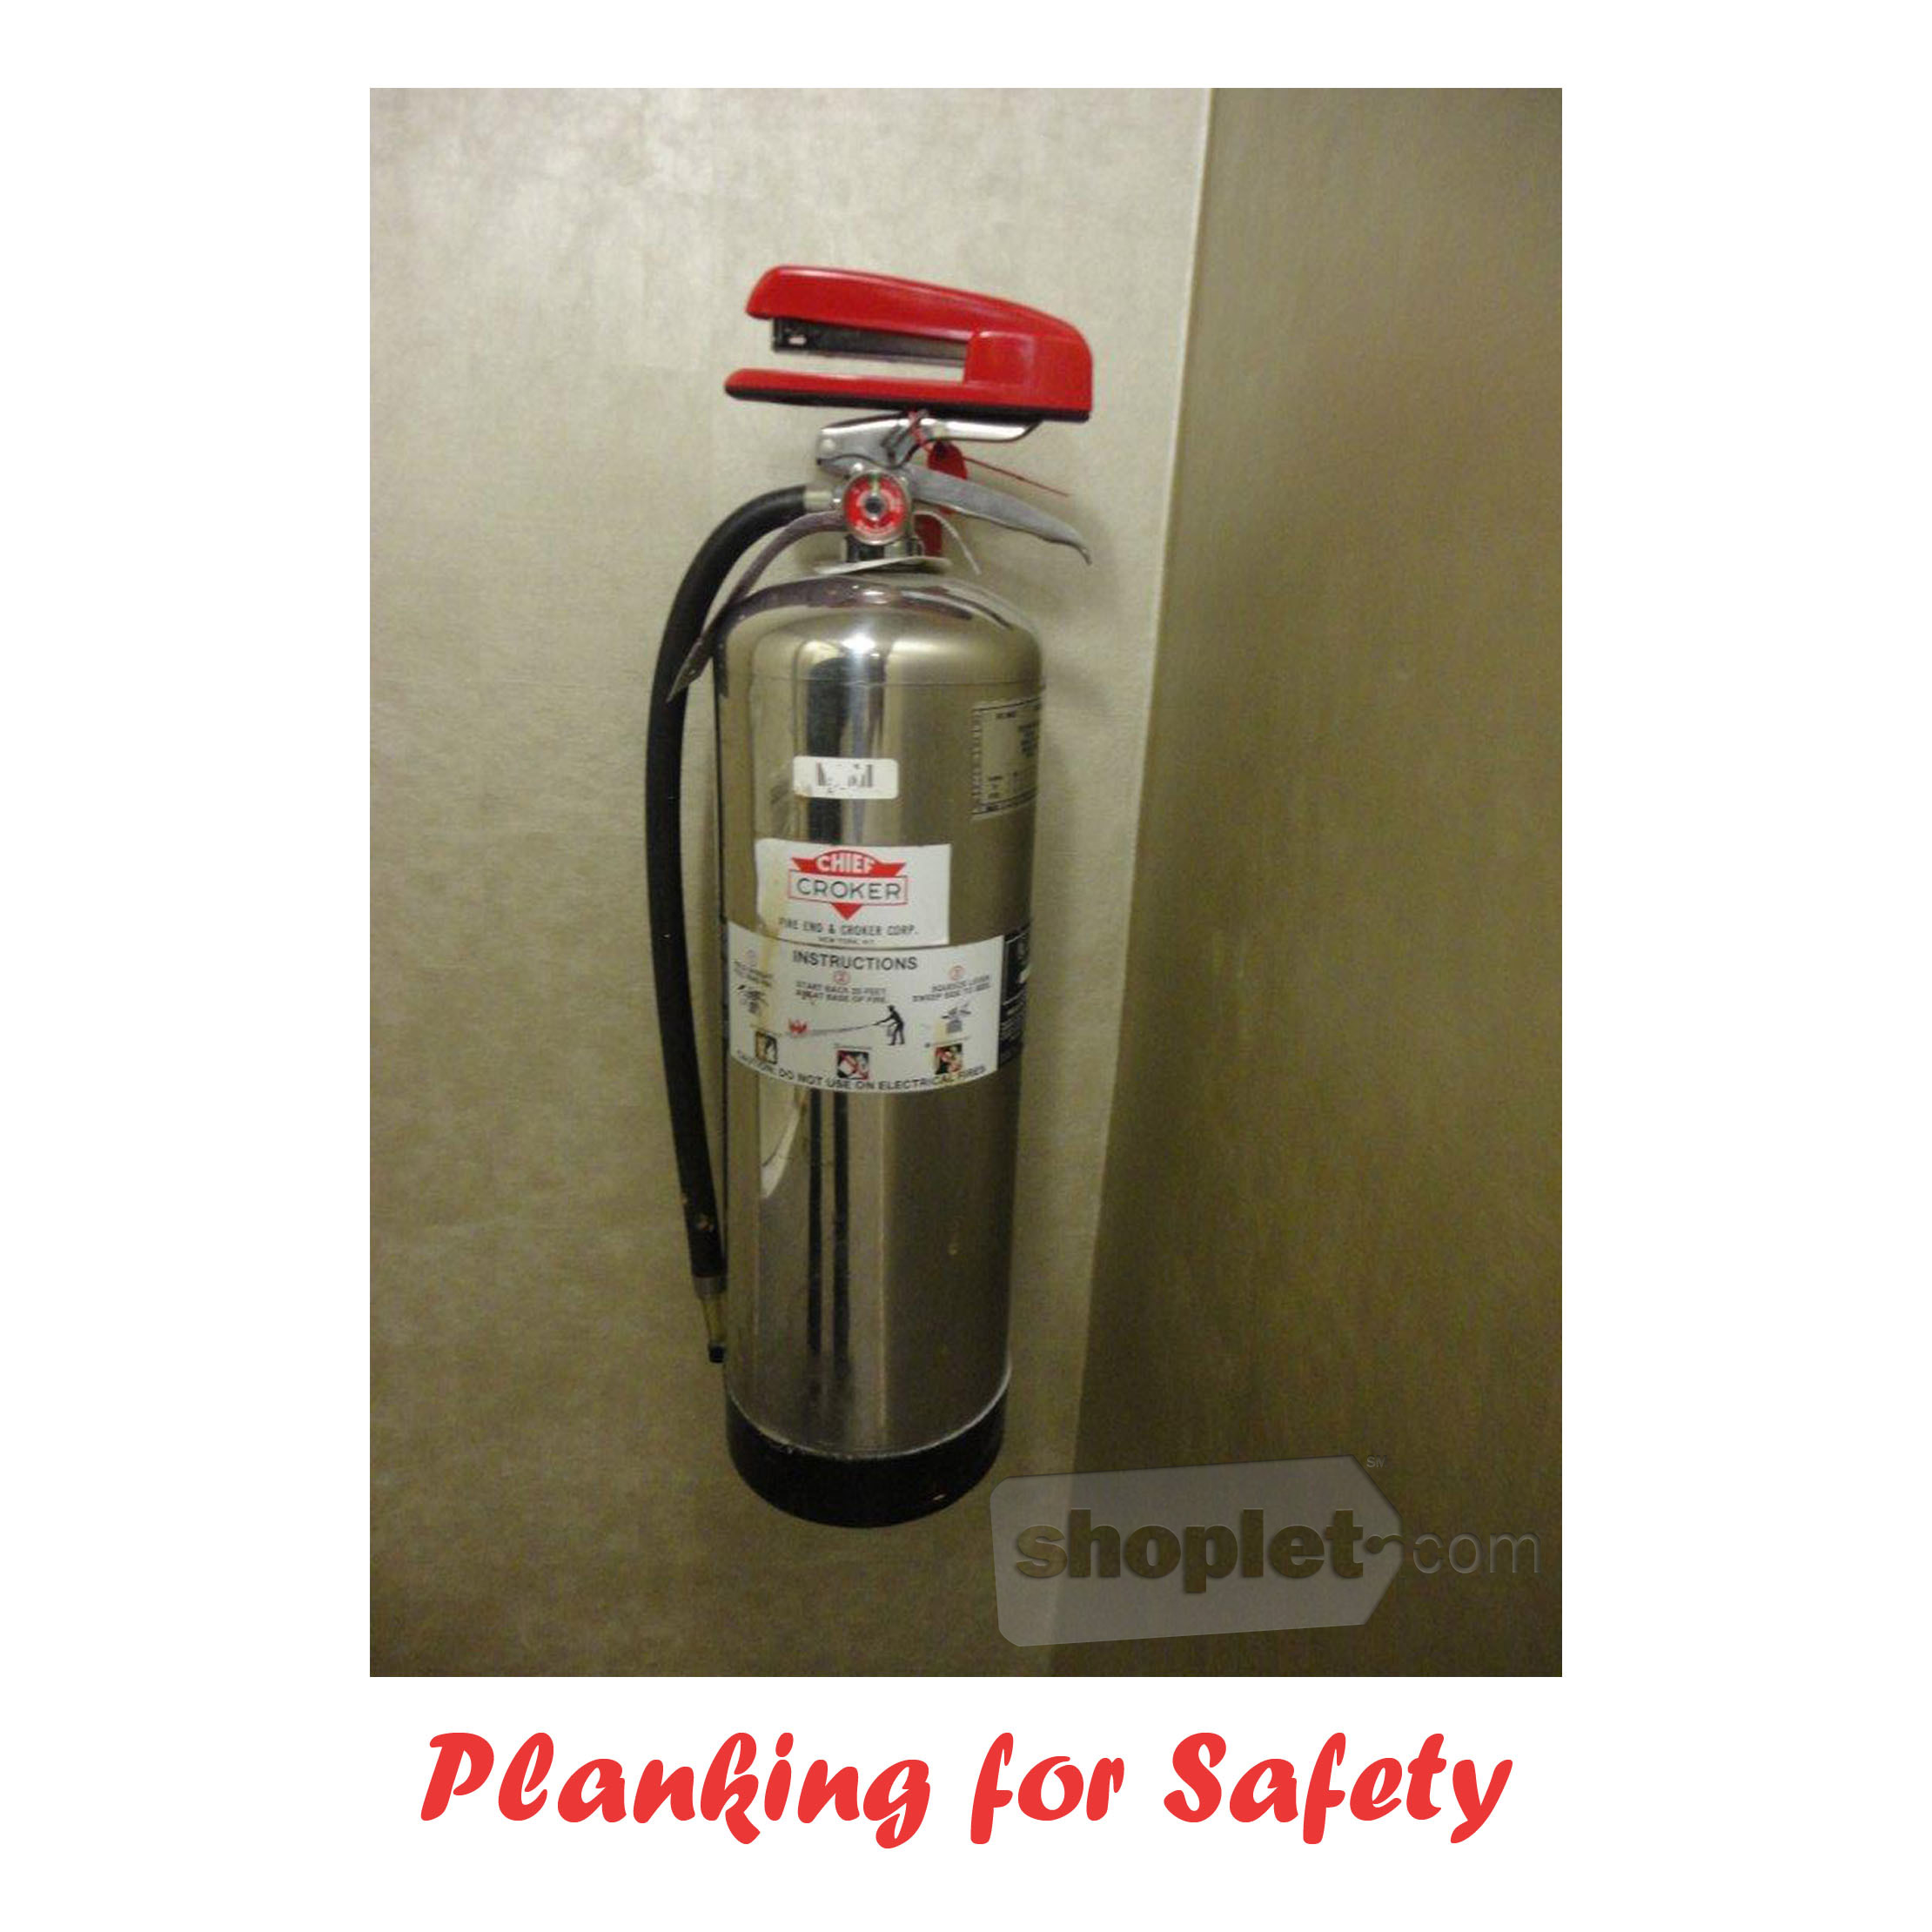 Shoplet Planking Stapler Extinguisher Shoplet Planking Stapler Planks on a Fire Extinguisher